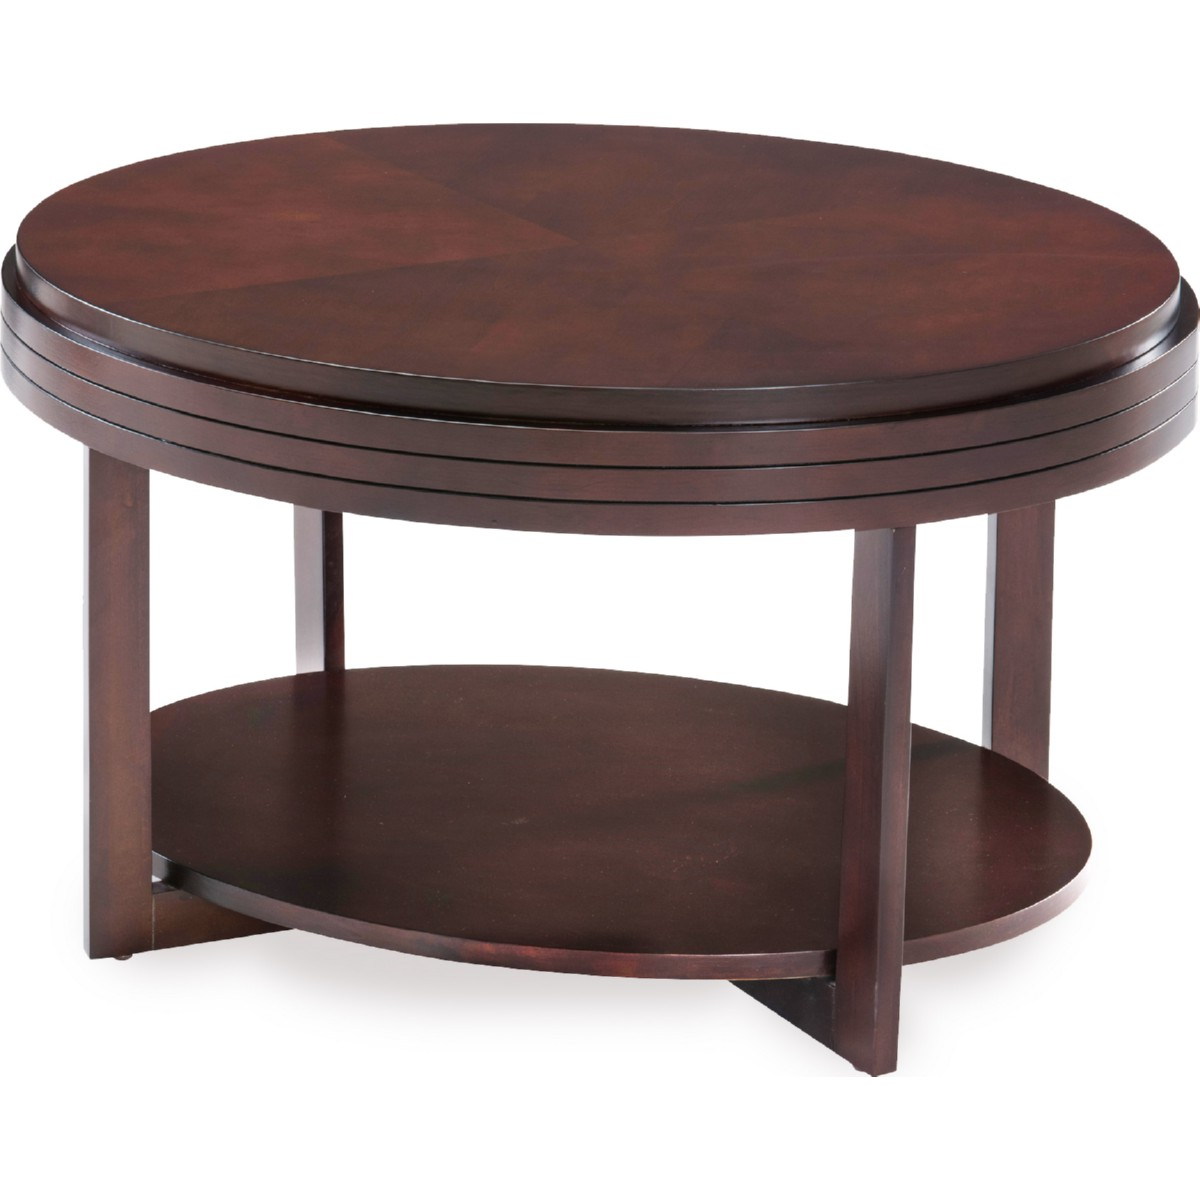 Leick Furniture Laurent Two Drawer Sofa Table Chocolate Cherry Finish Leick Furniture Stratus